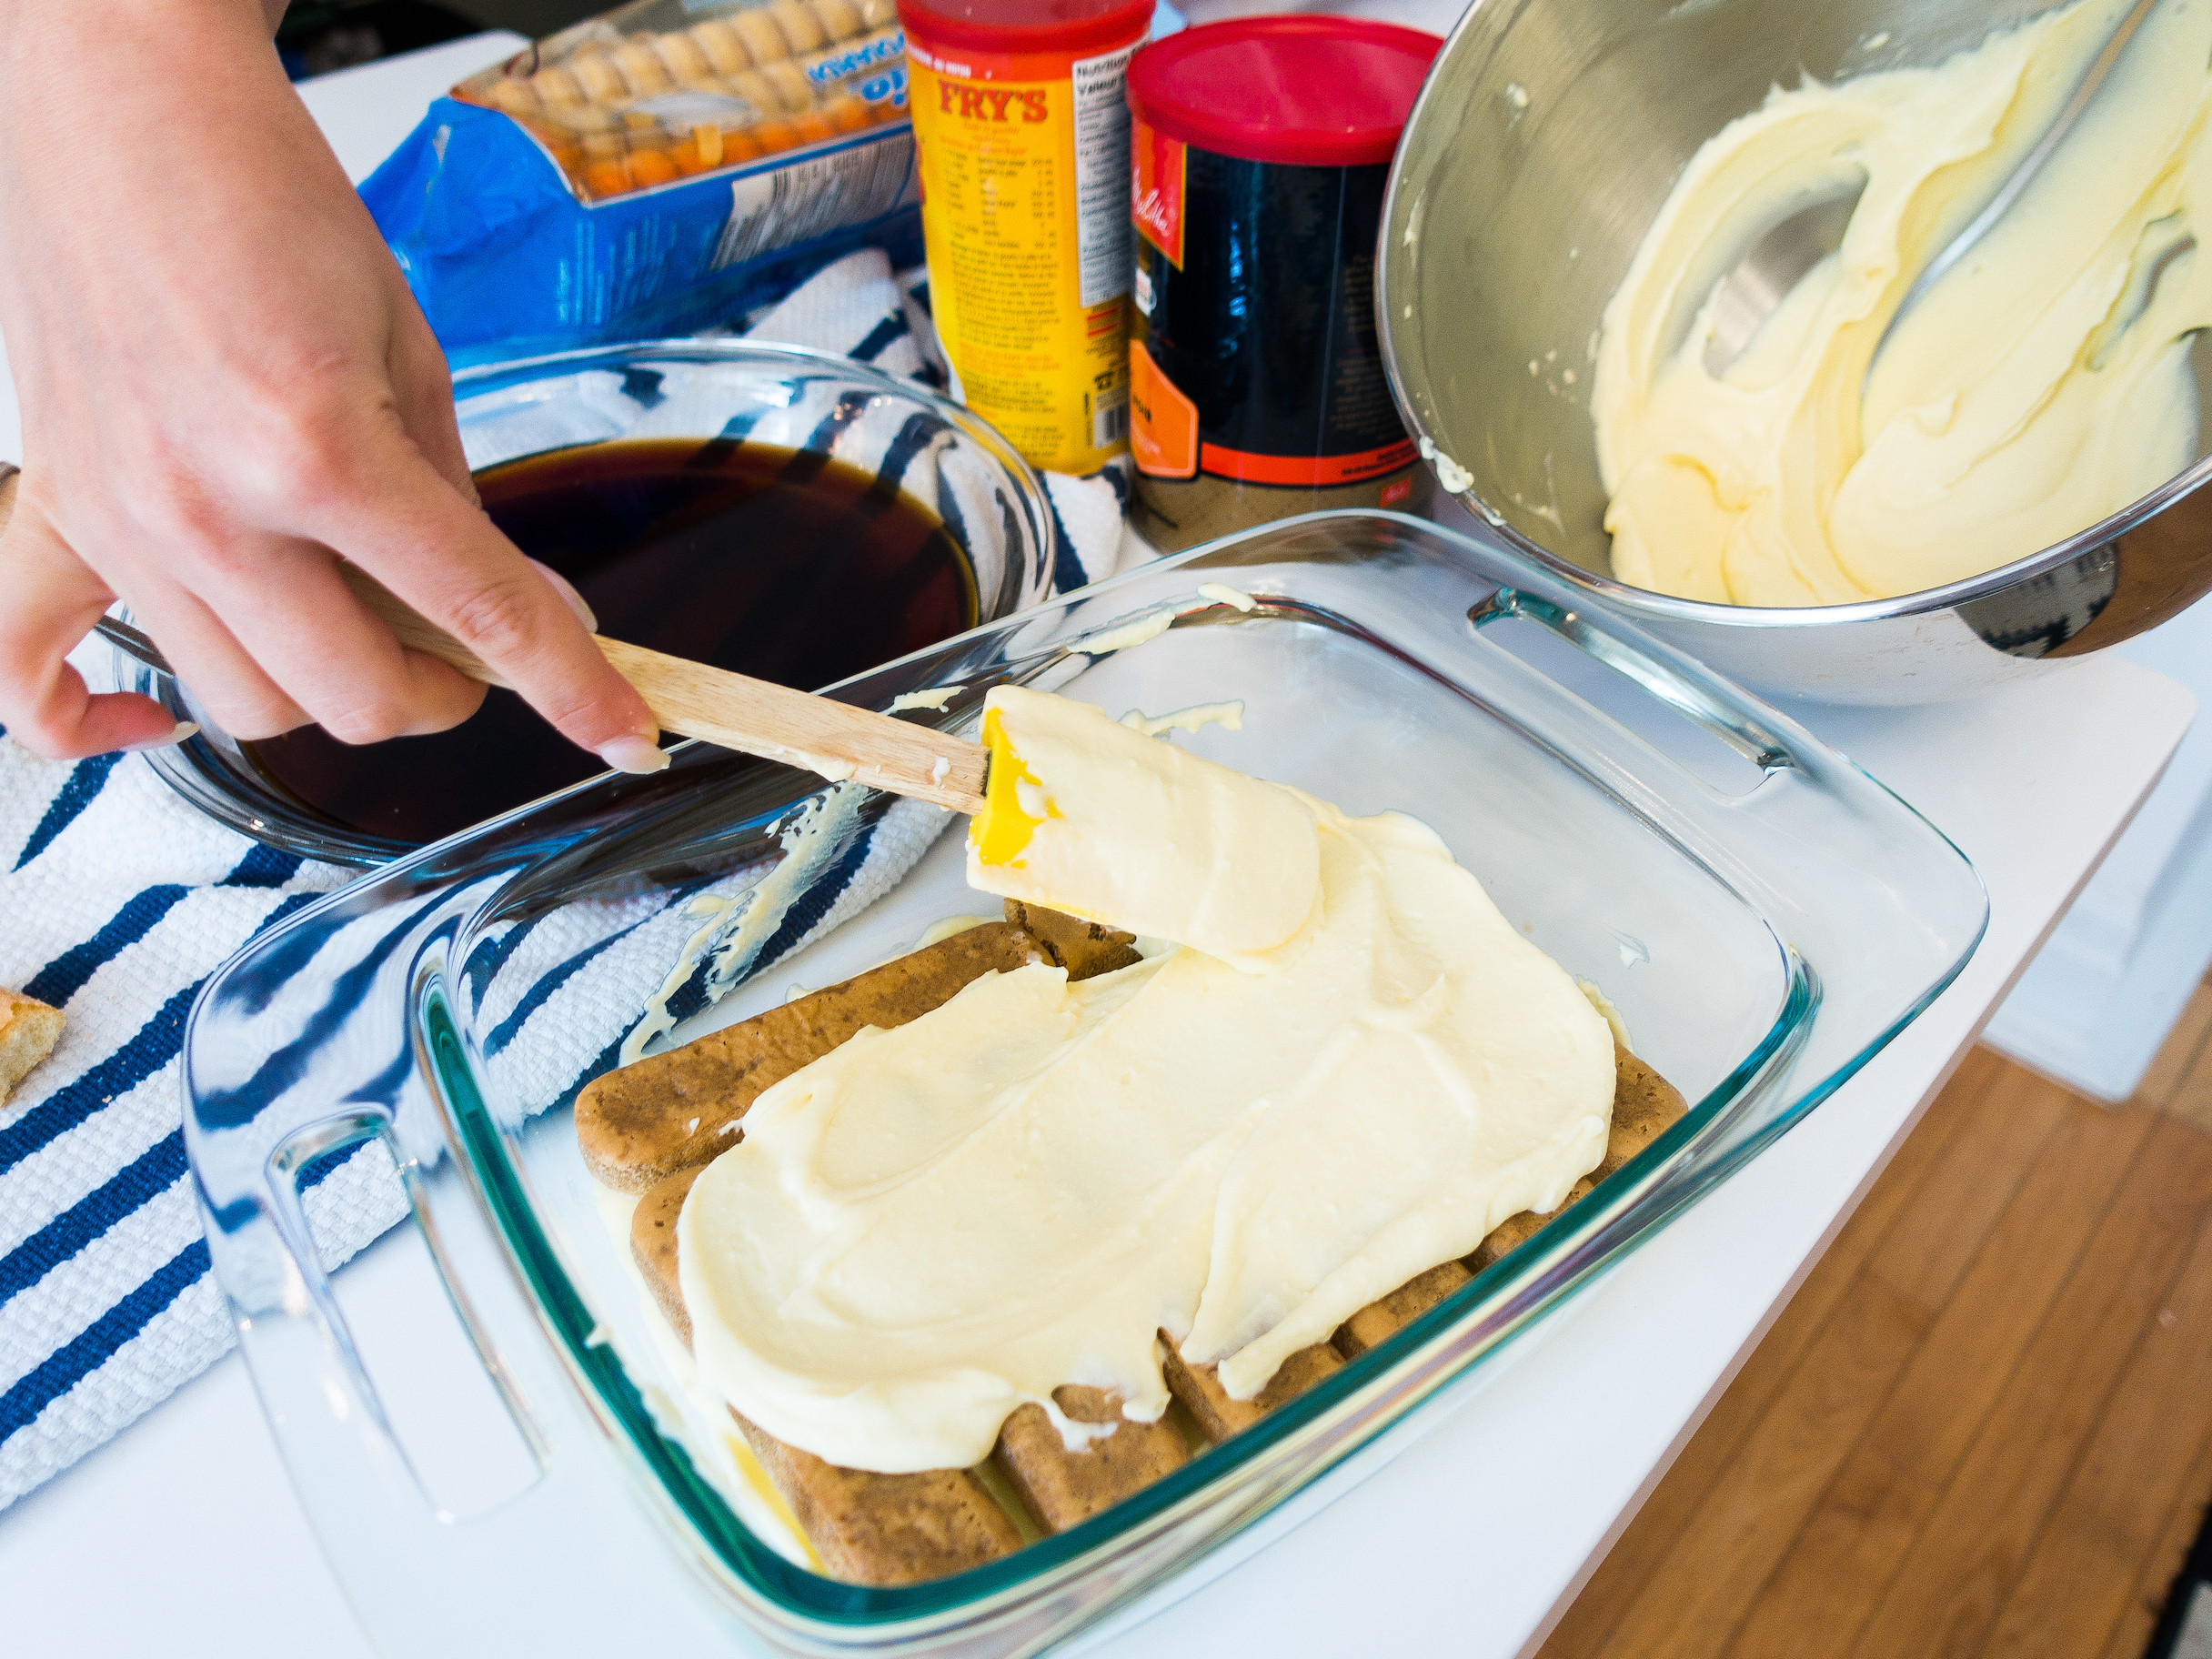 Add another layer of cream. Repeat until done.